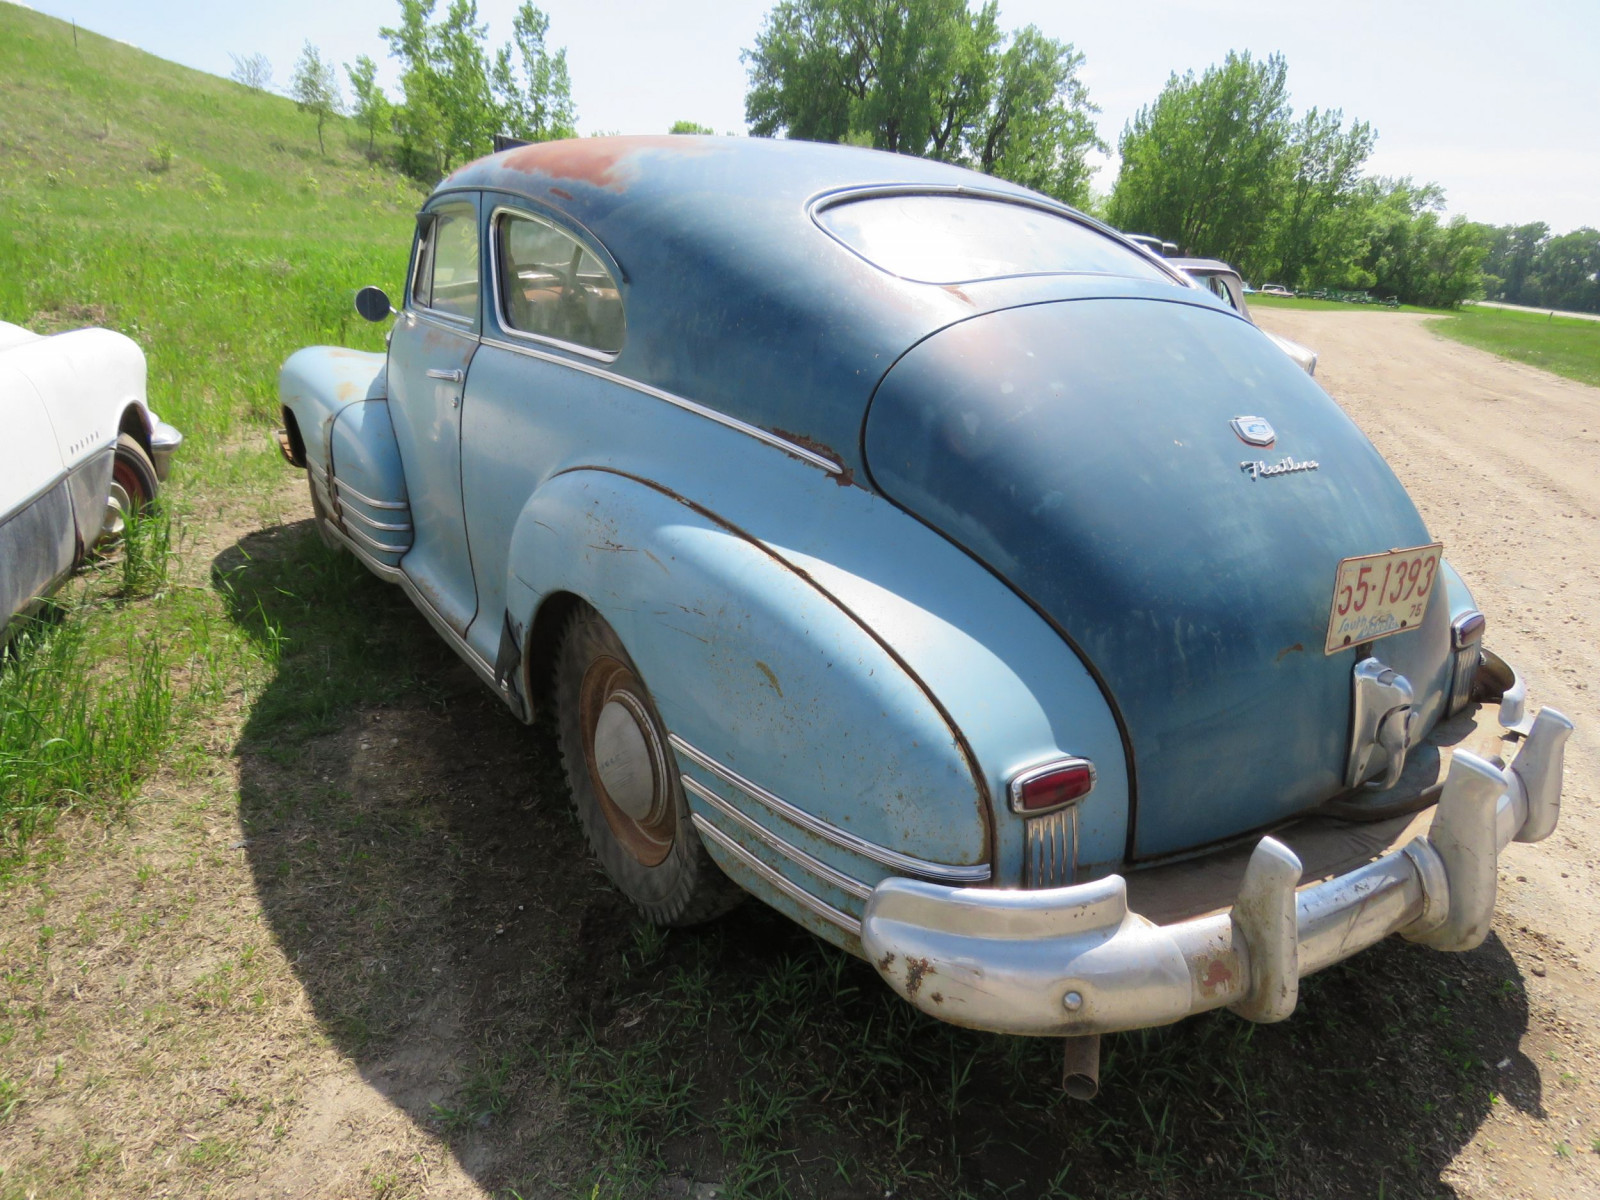 1947 Chevrolet Fleet line 2dr Sedan - Image 5